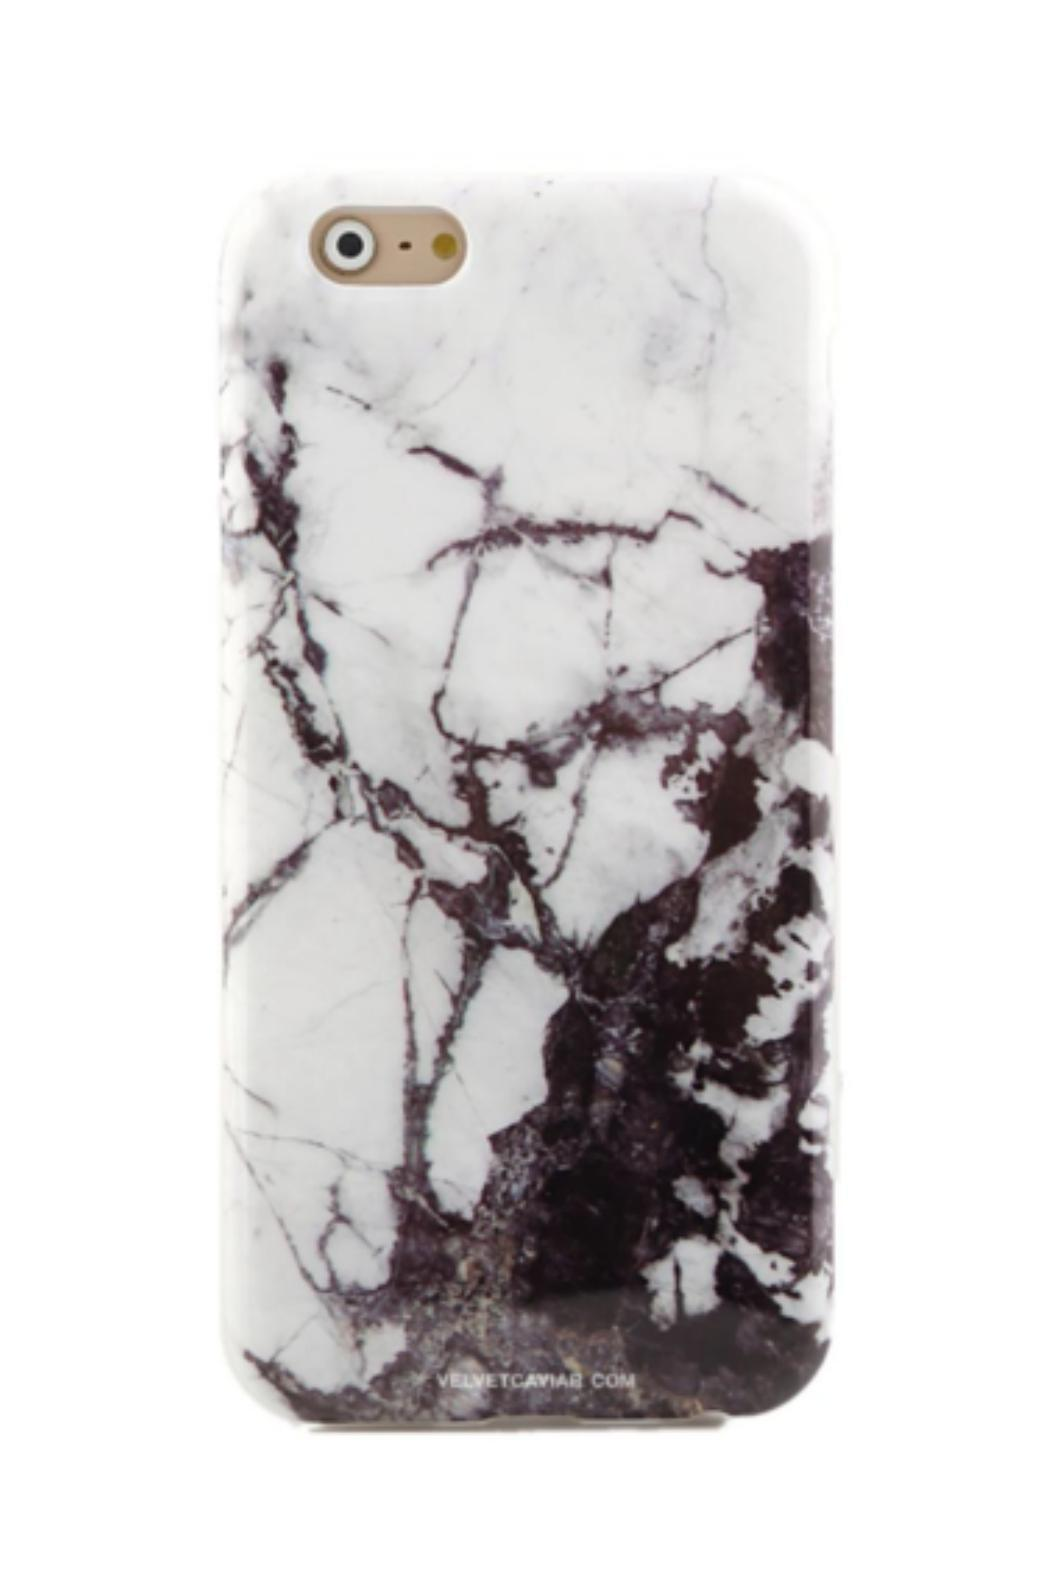 Velvet Caviar Marble Iphone6 Case From New York By Let S